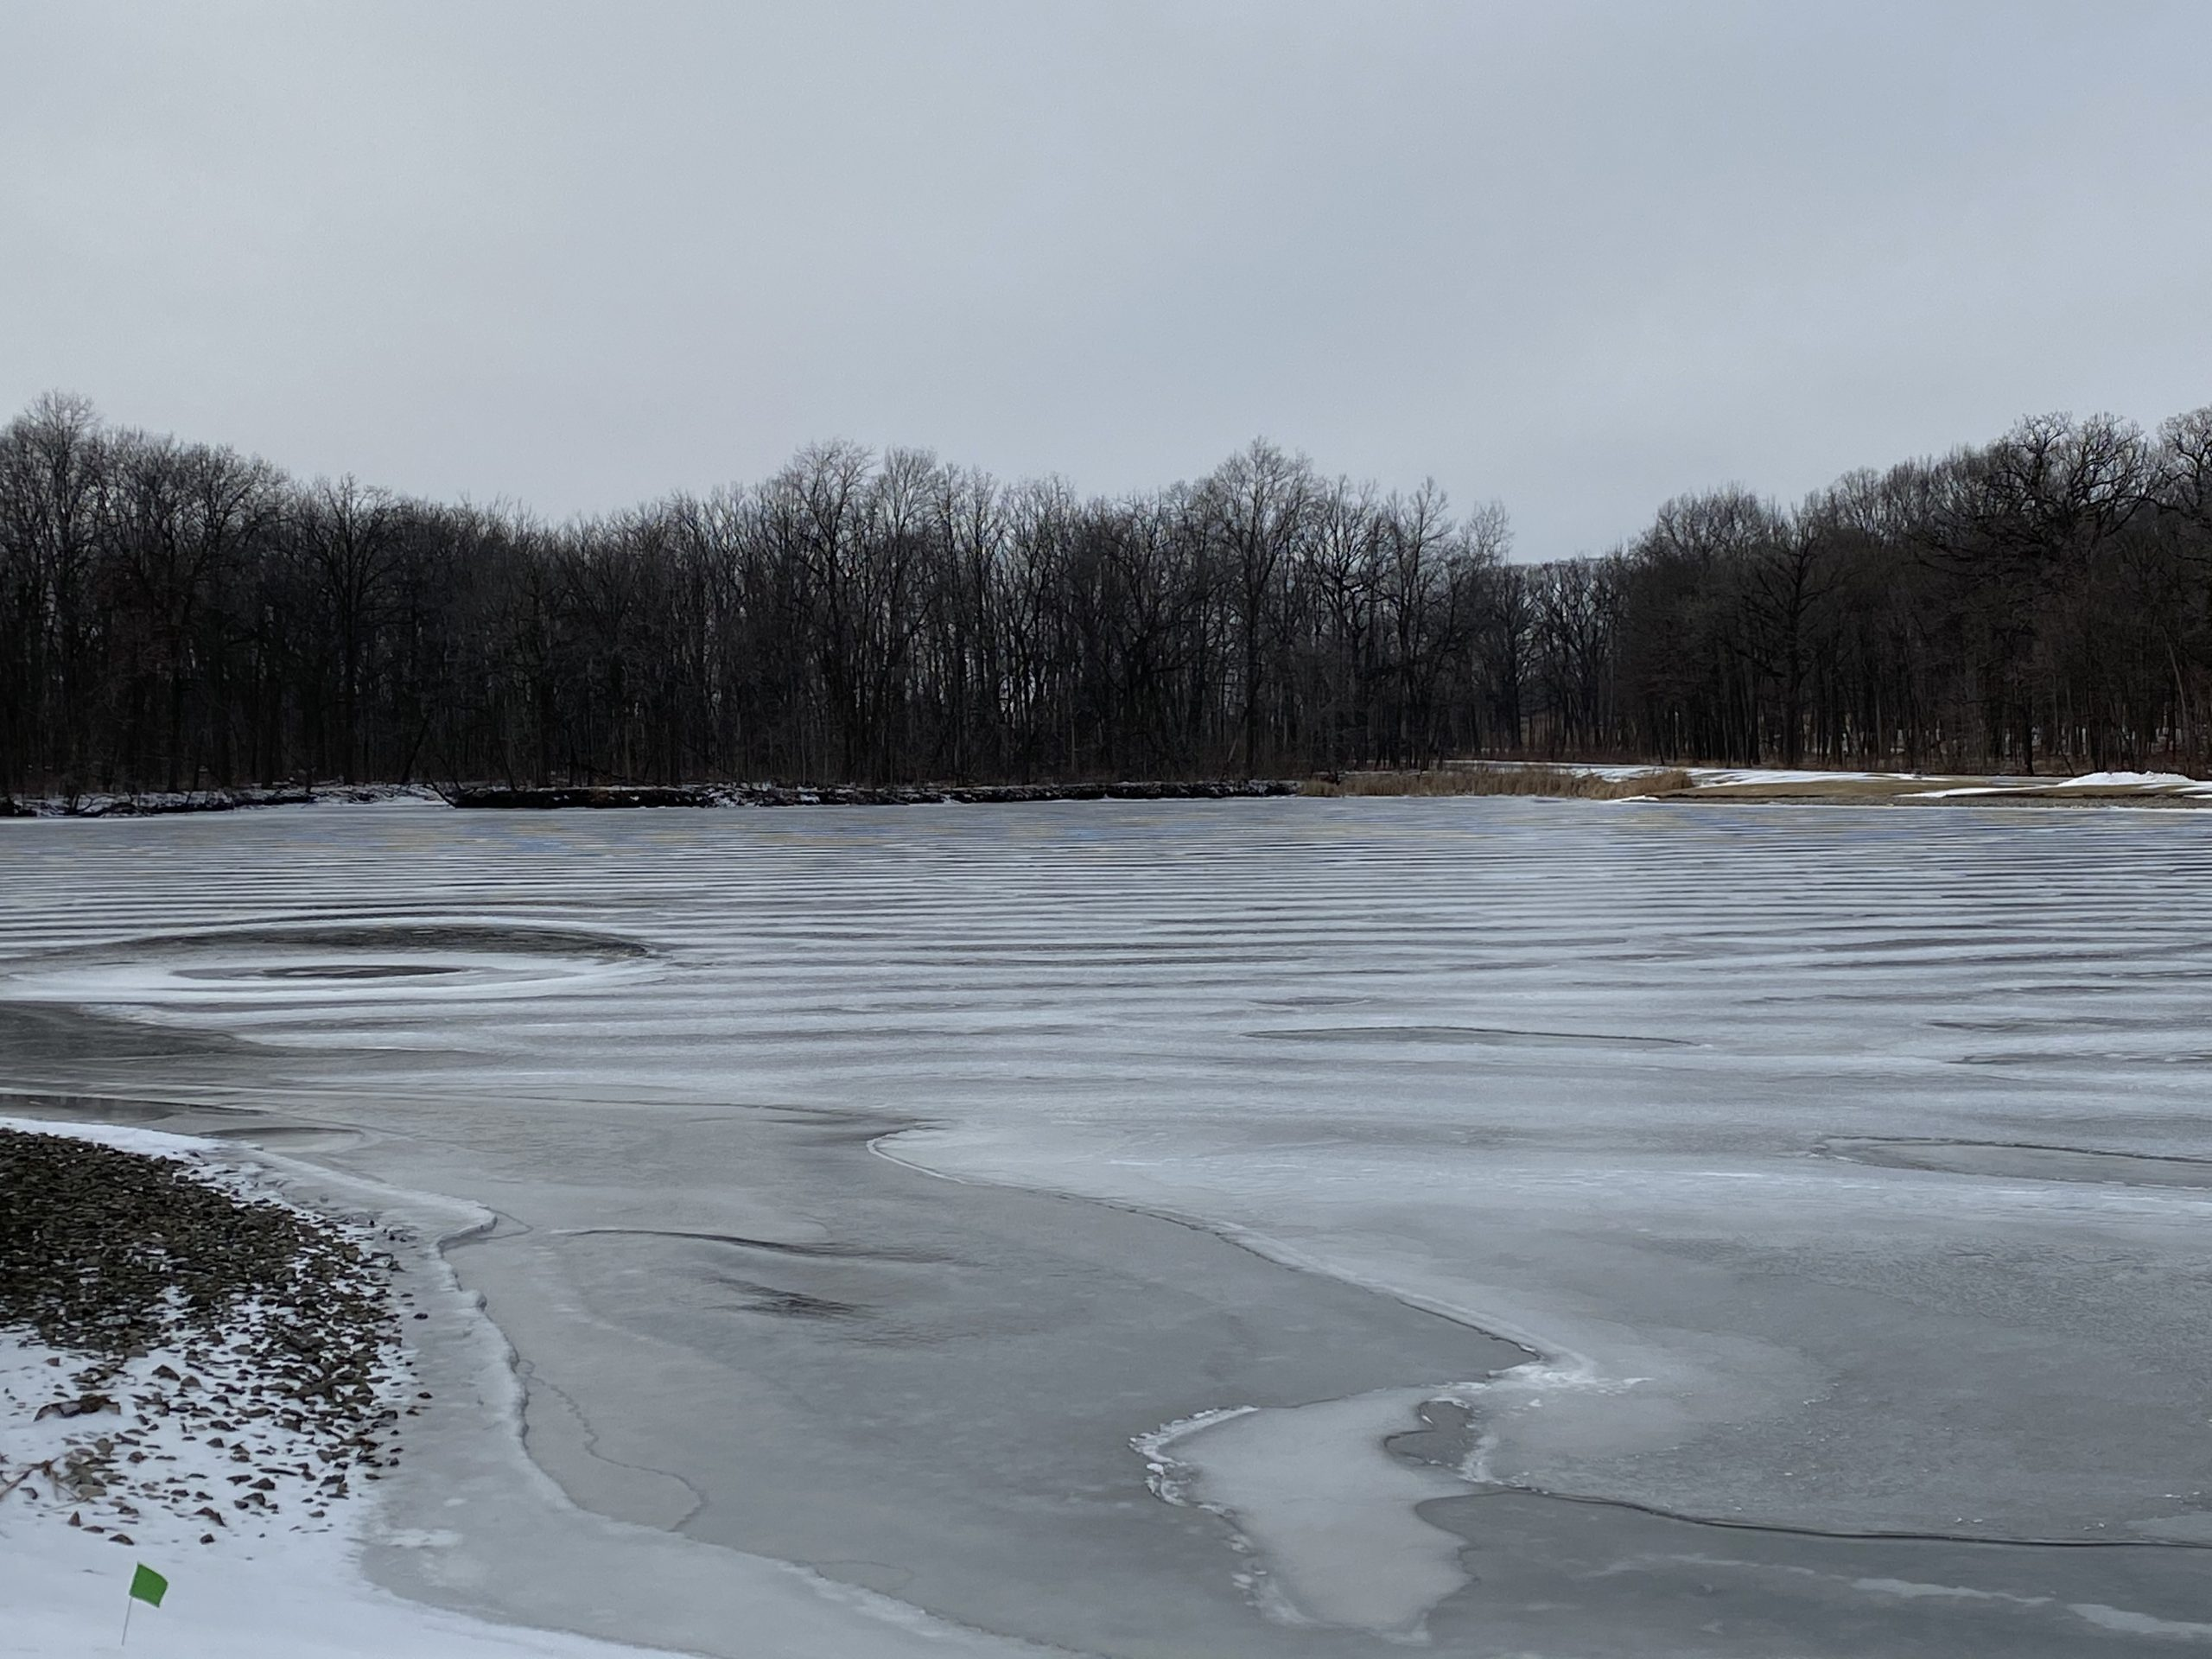 (4/4) It's winter ripples and effects. nature, landscape, winter, lake, water, snow, ice, Swan Lake Photo: Michael Tartaglia